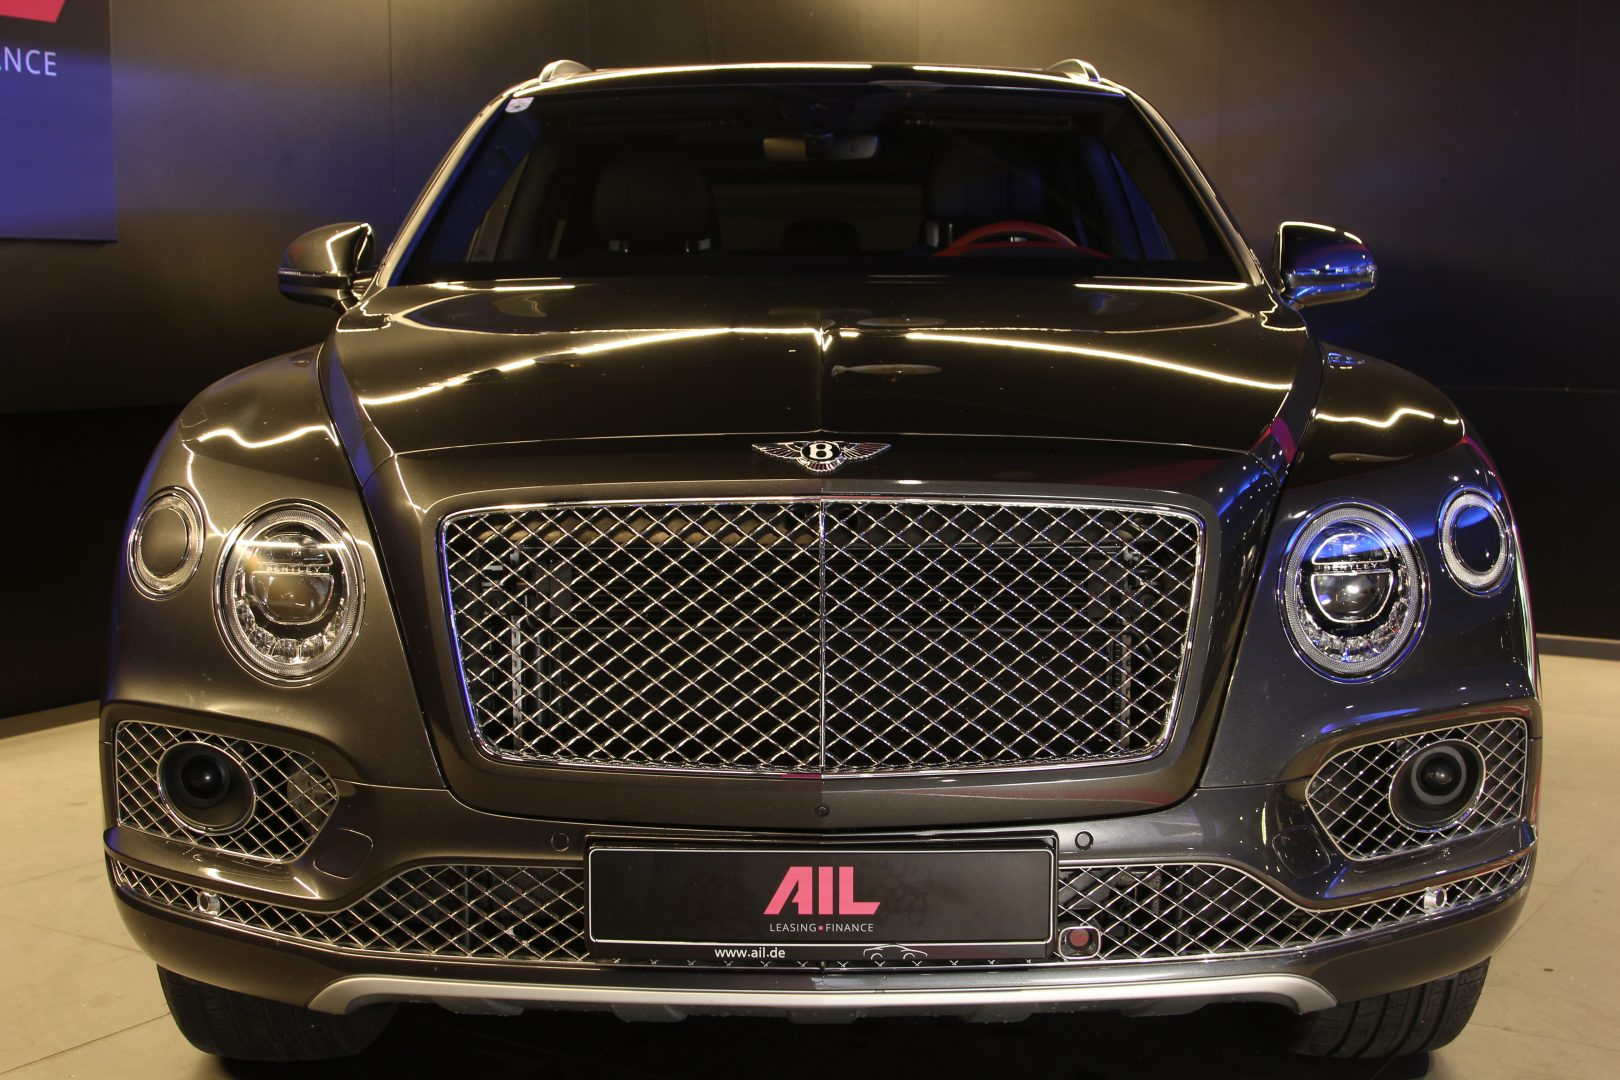 AIL Bentley Bentayga V12 Bi-Turbo RSE Panorama DAB 2